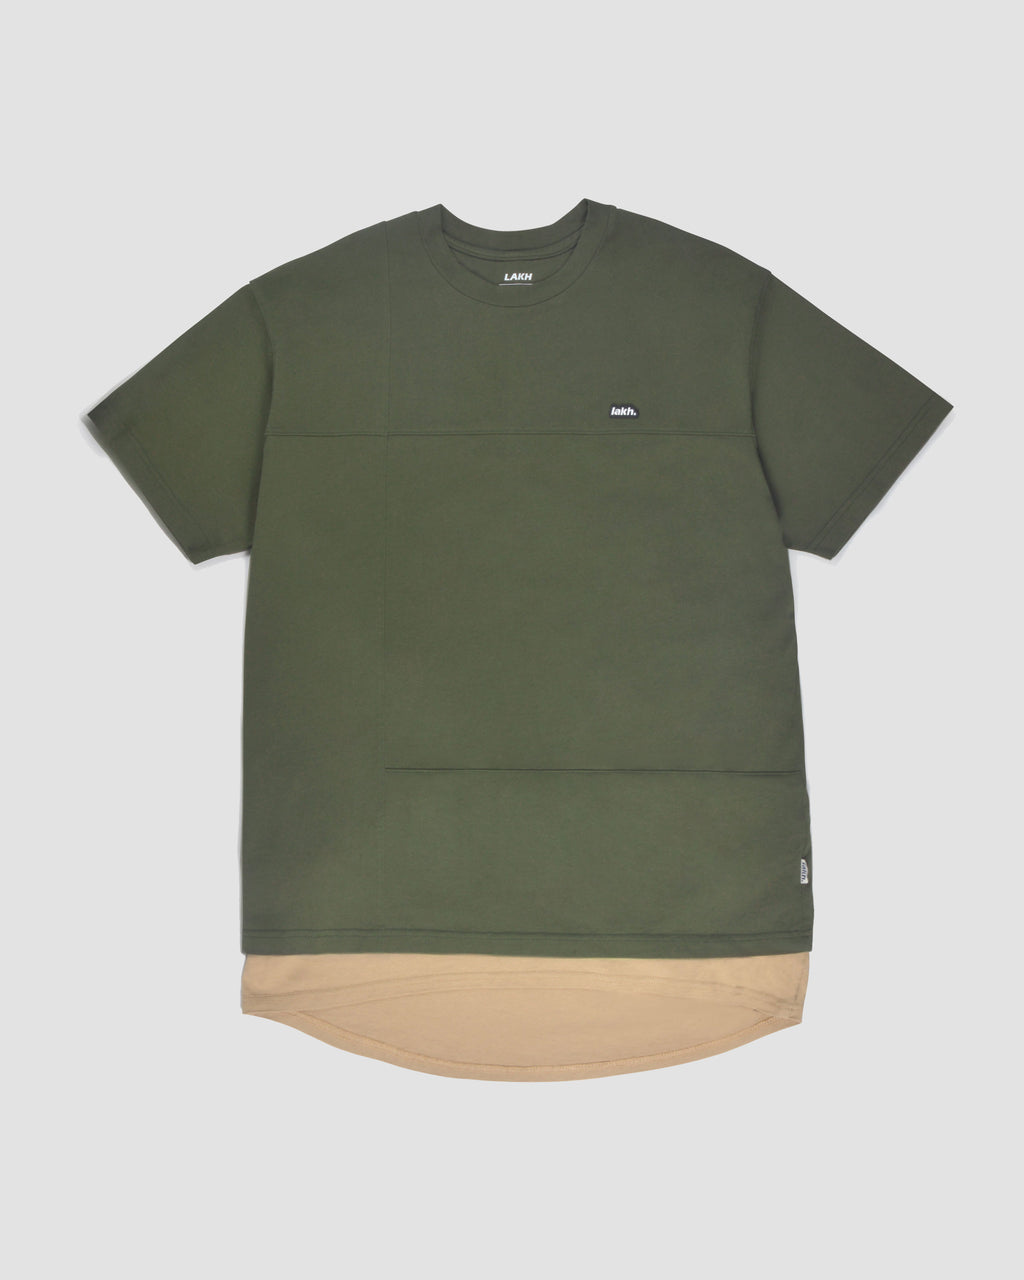 Layers Patch Tee - Olive